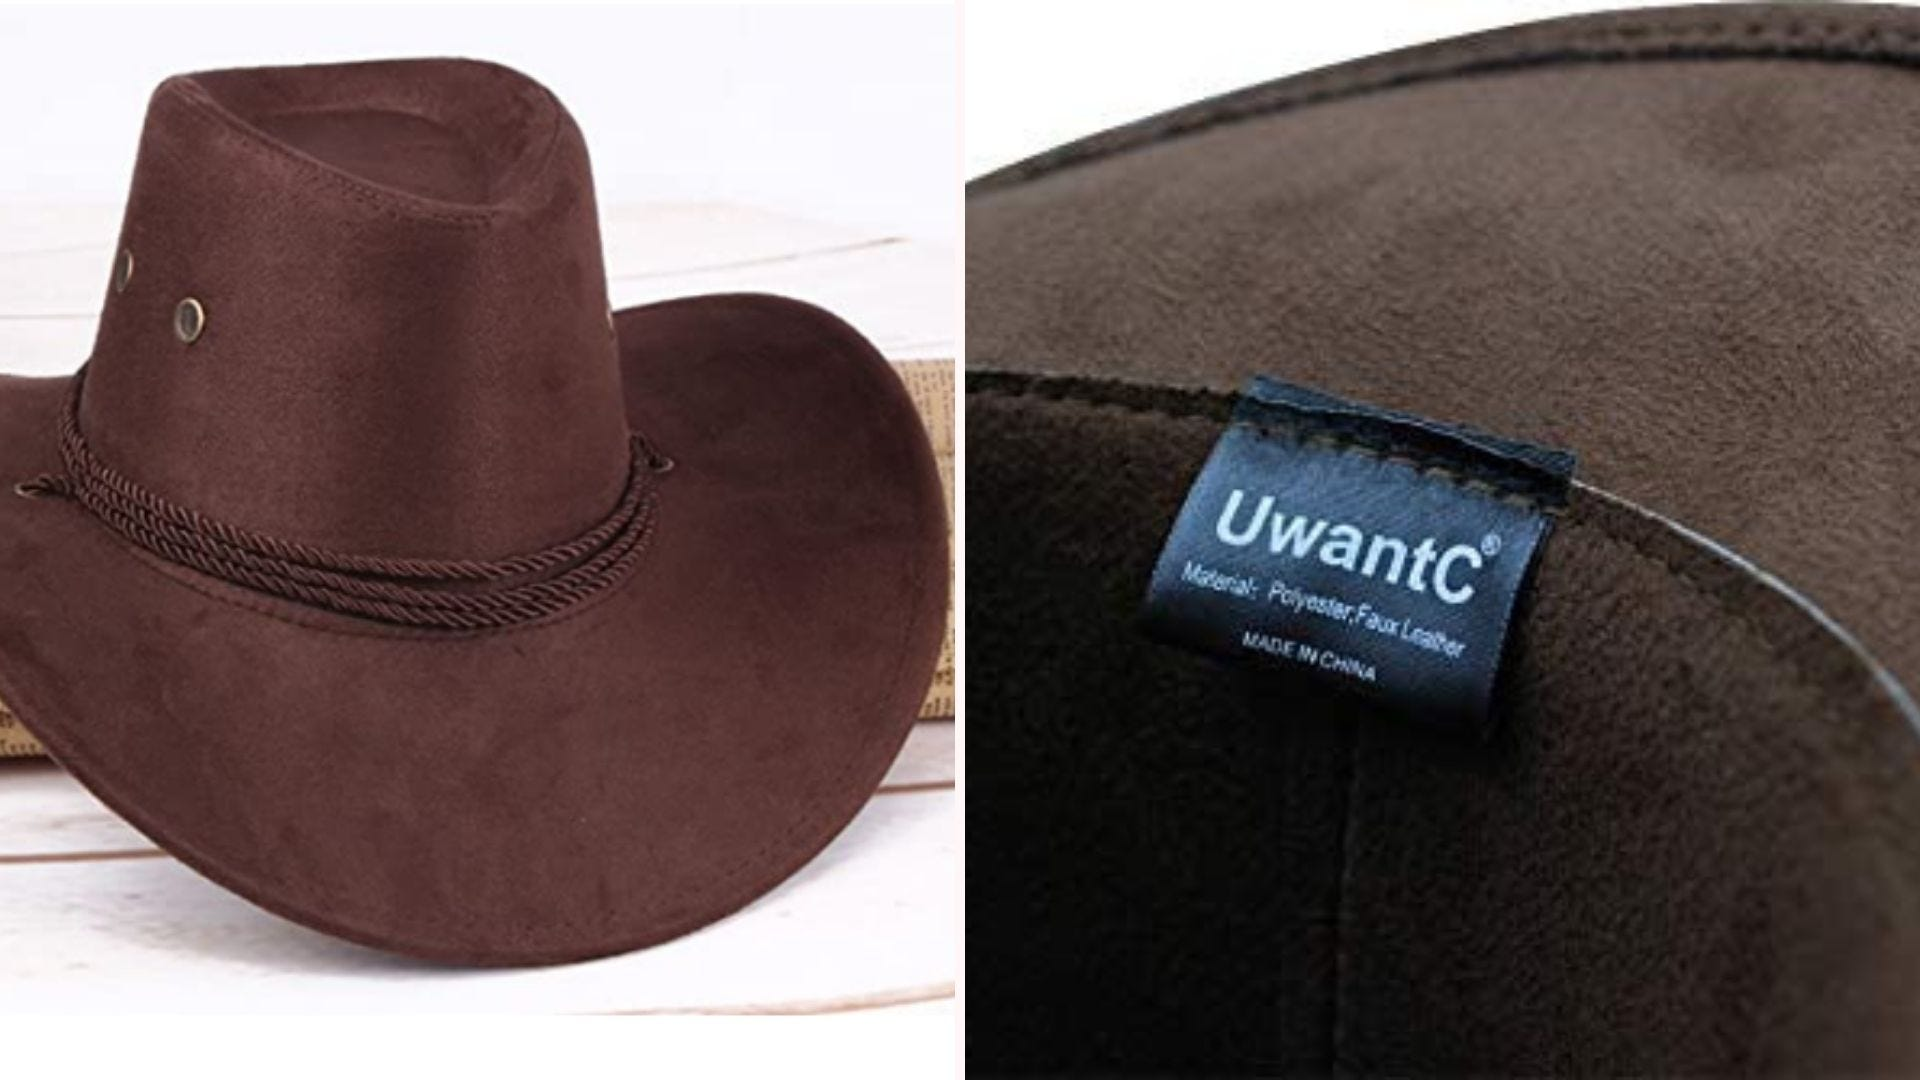 On the left, a coffee-brown cowboy hat with an acorn-style crown. On the right, a close up of the hat's underside tag, which showcases the it's polyester and faux leather construction.